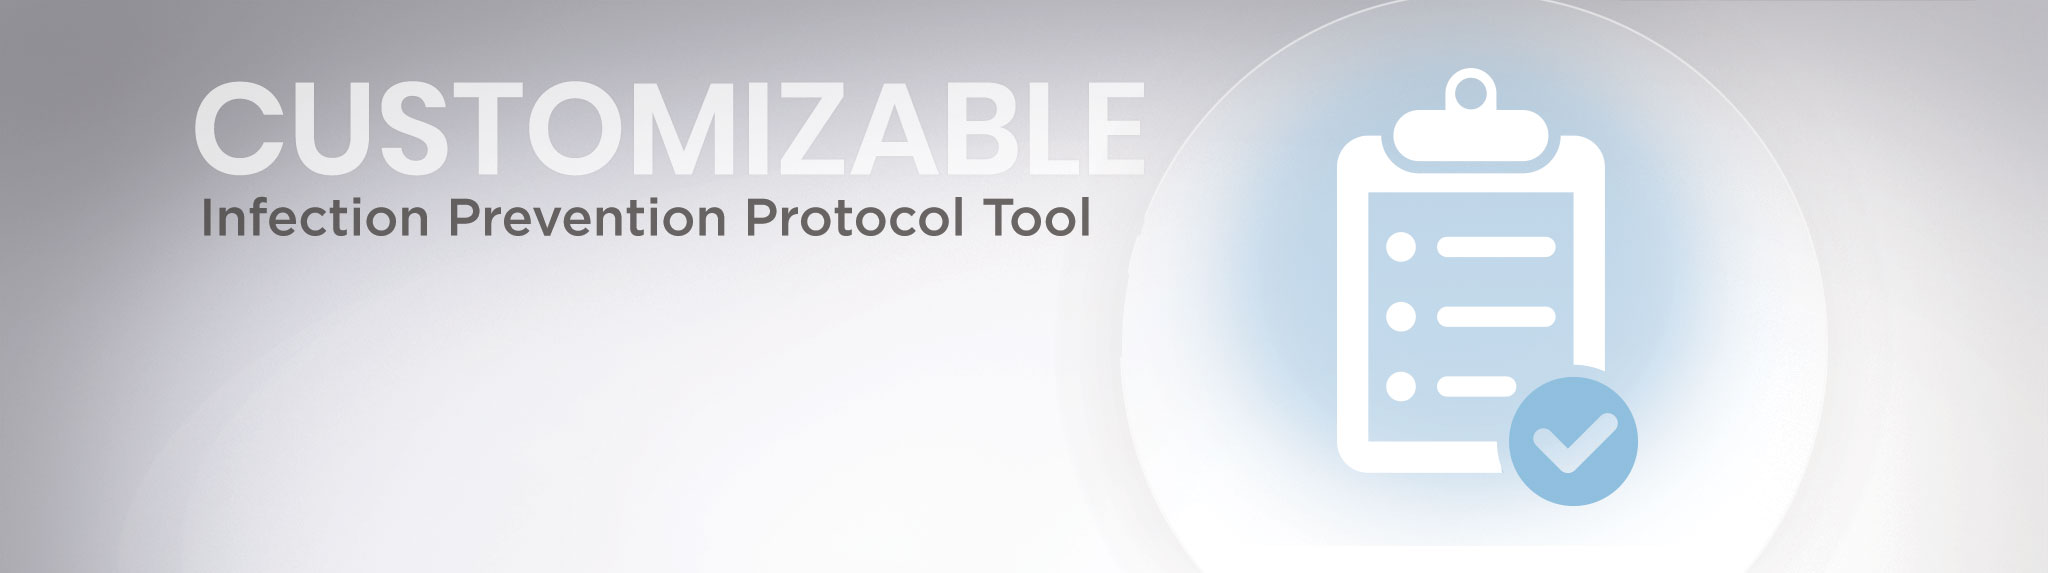 Customizable Infection Prevention Protocol Tool